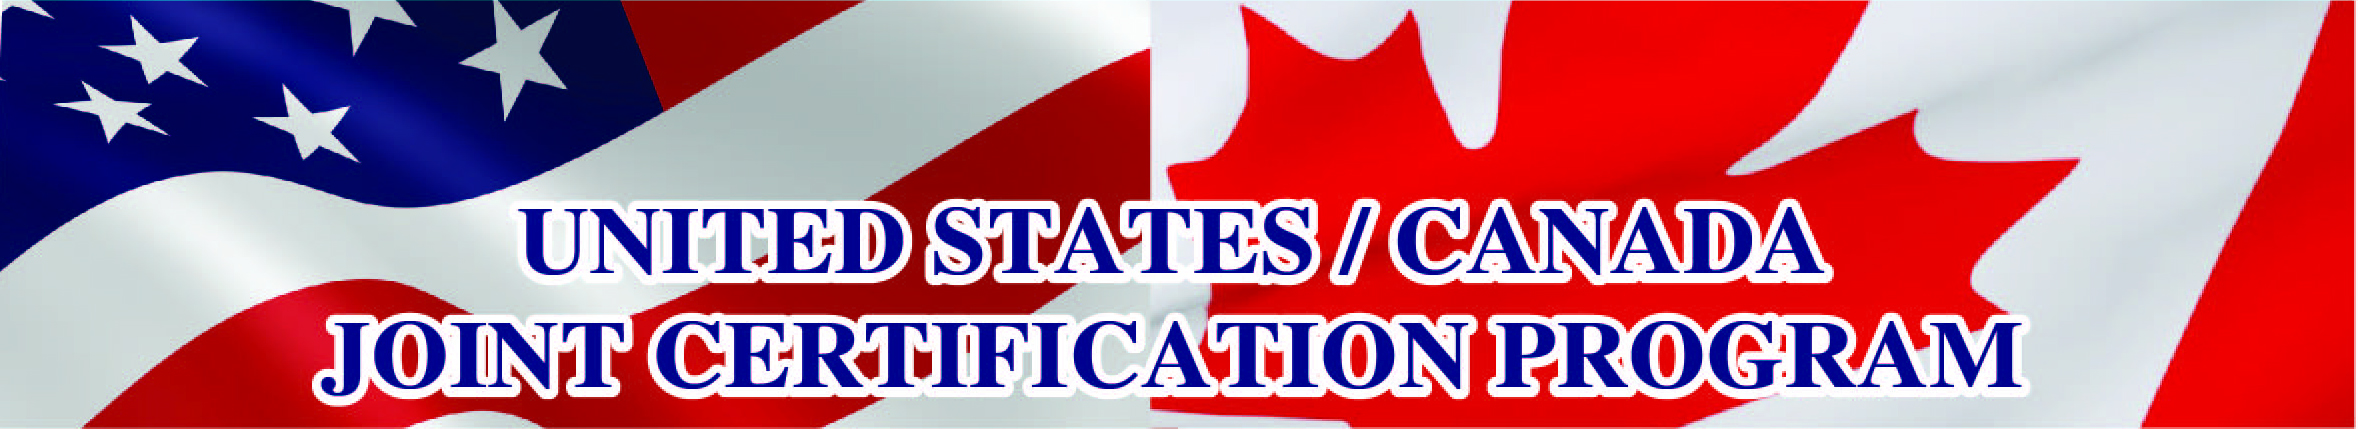 American and Canadian flags covered with the words United States/Canada Joint Certification Program